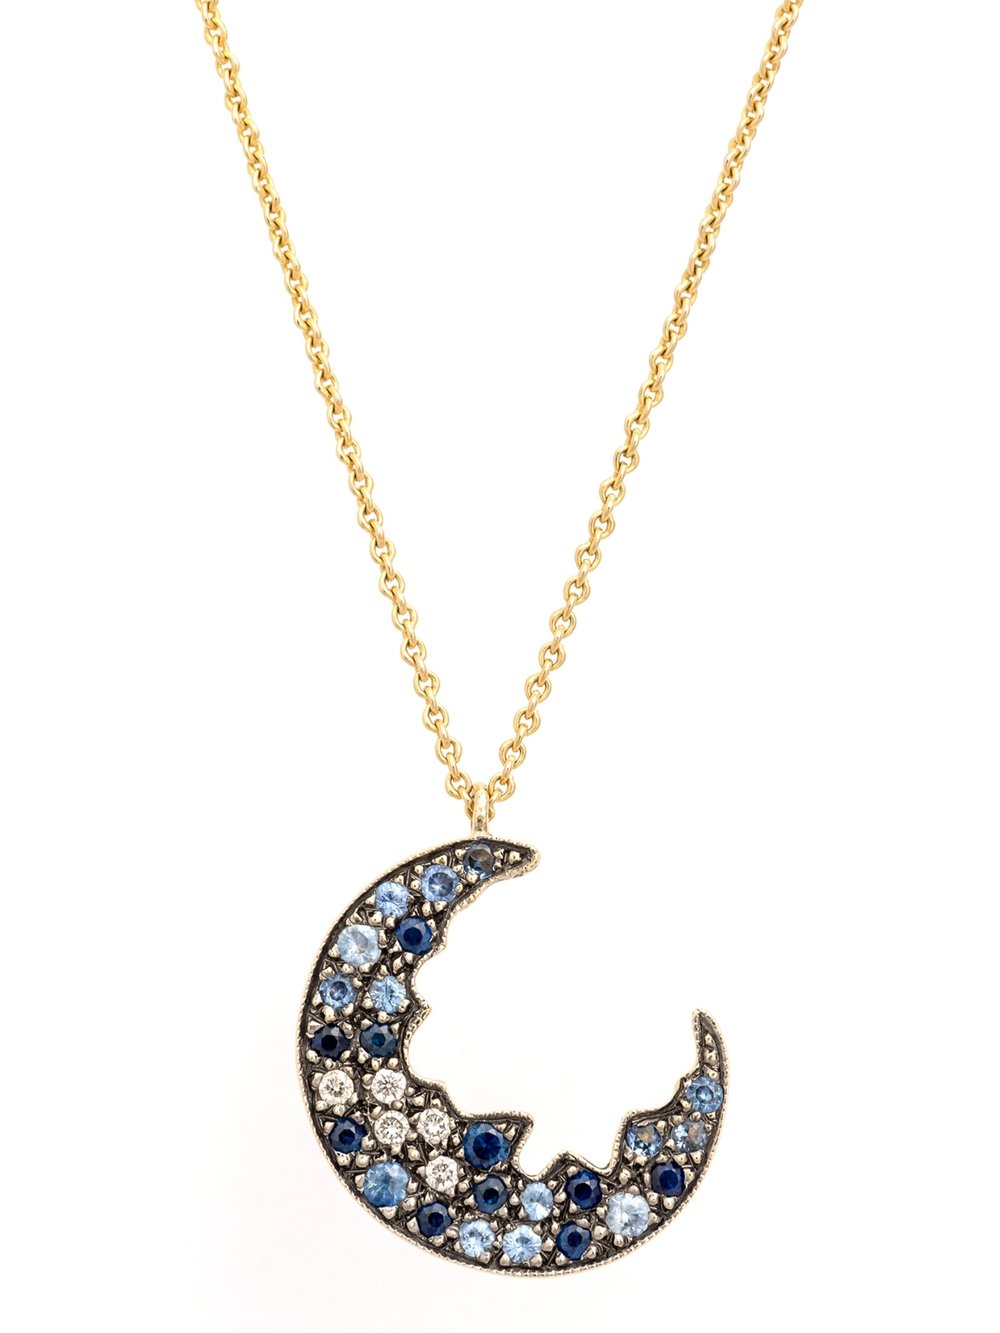 Broken Moon Necklace